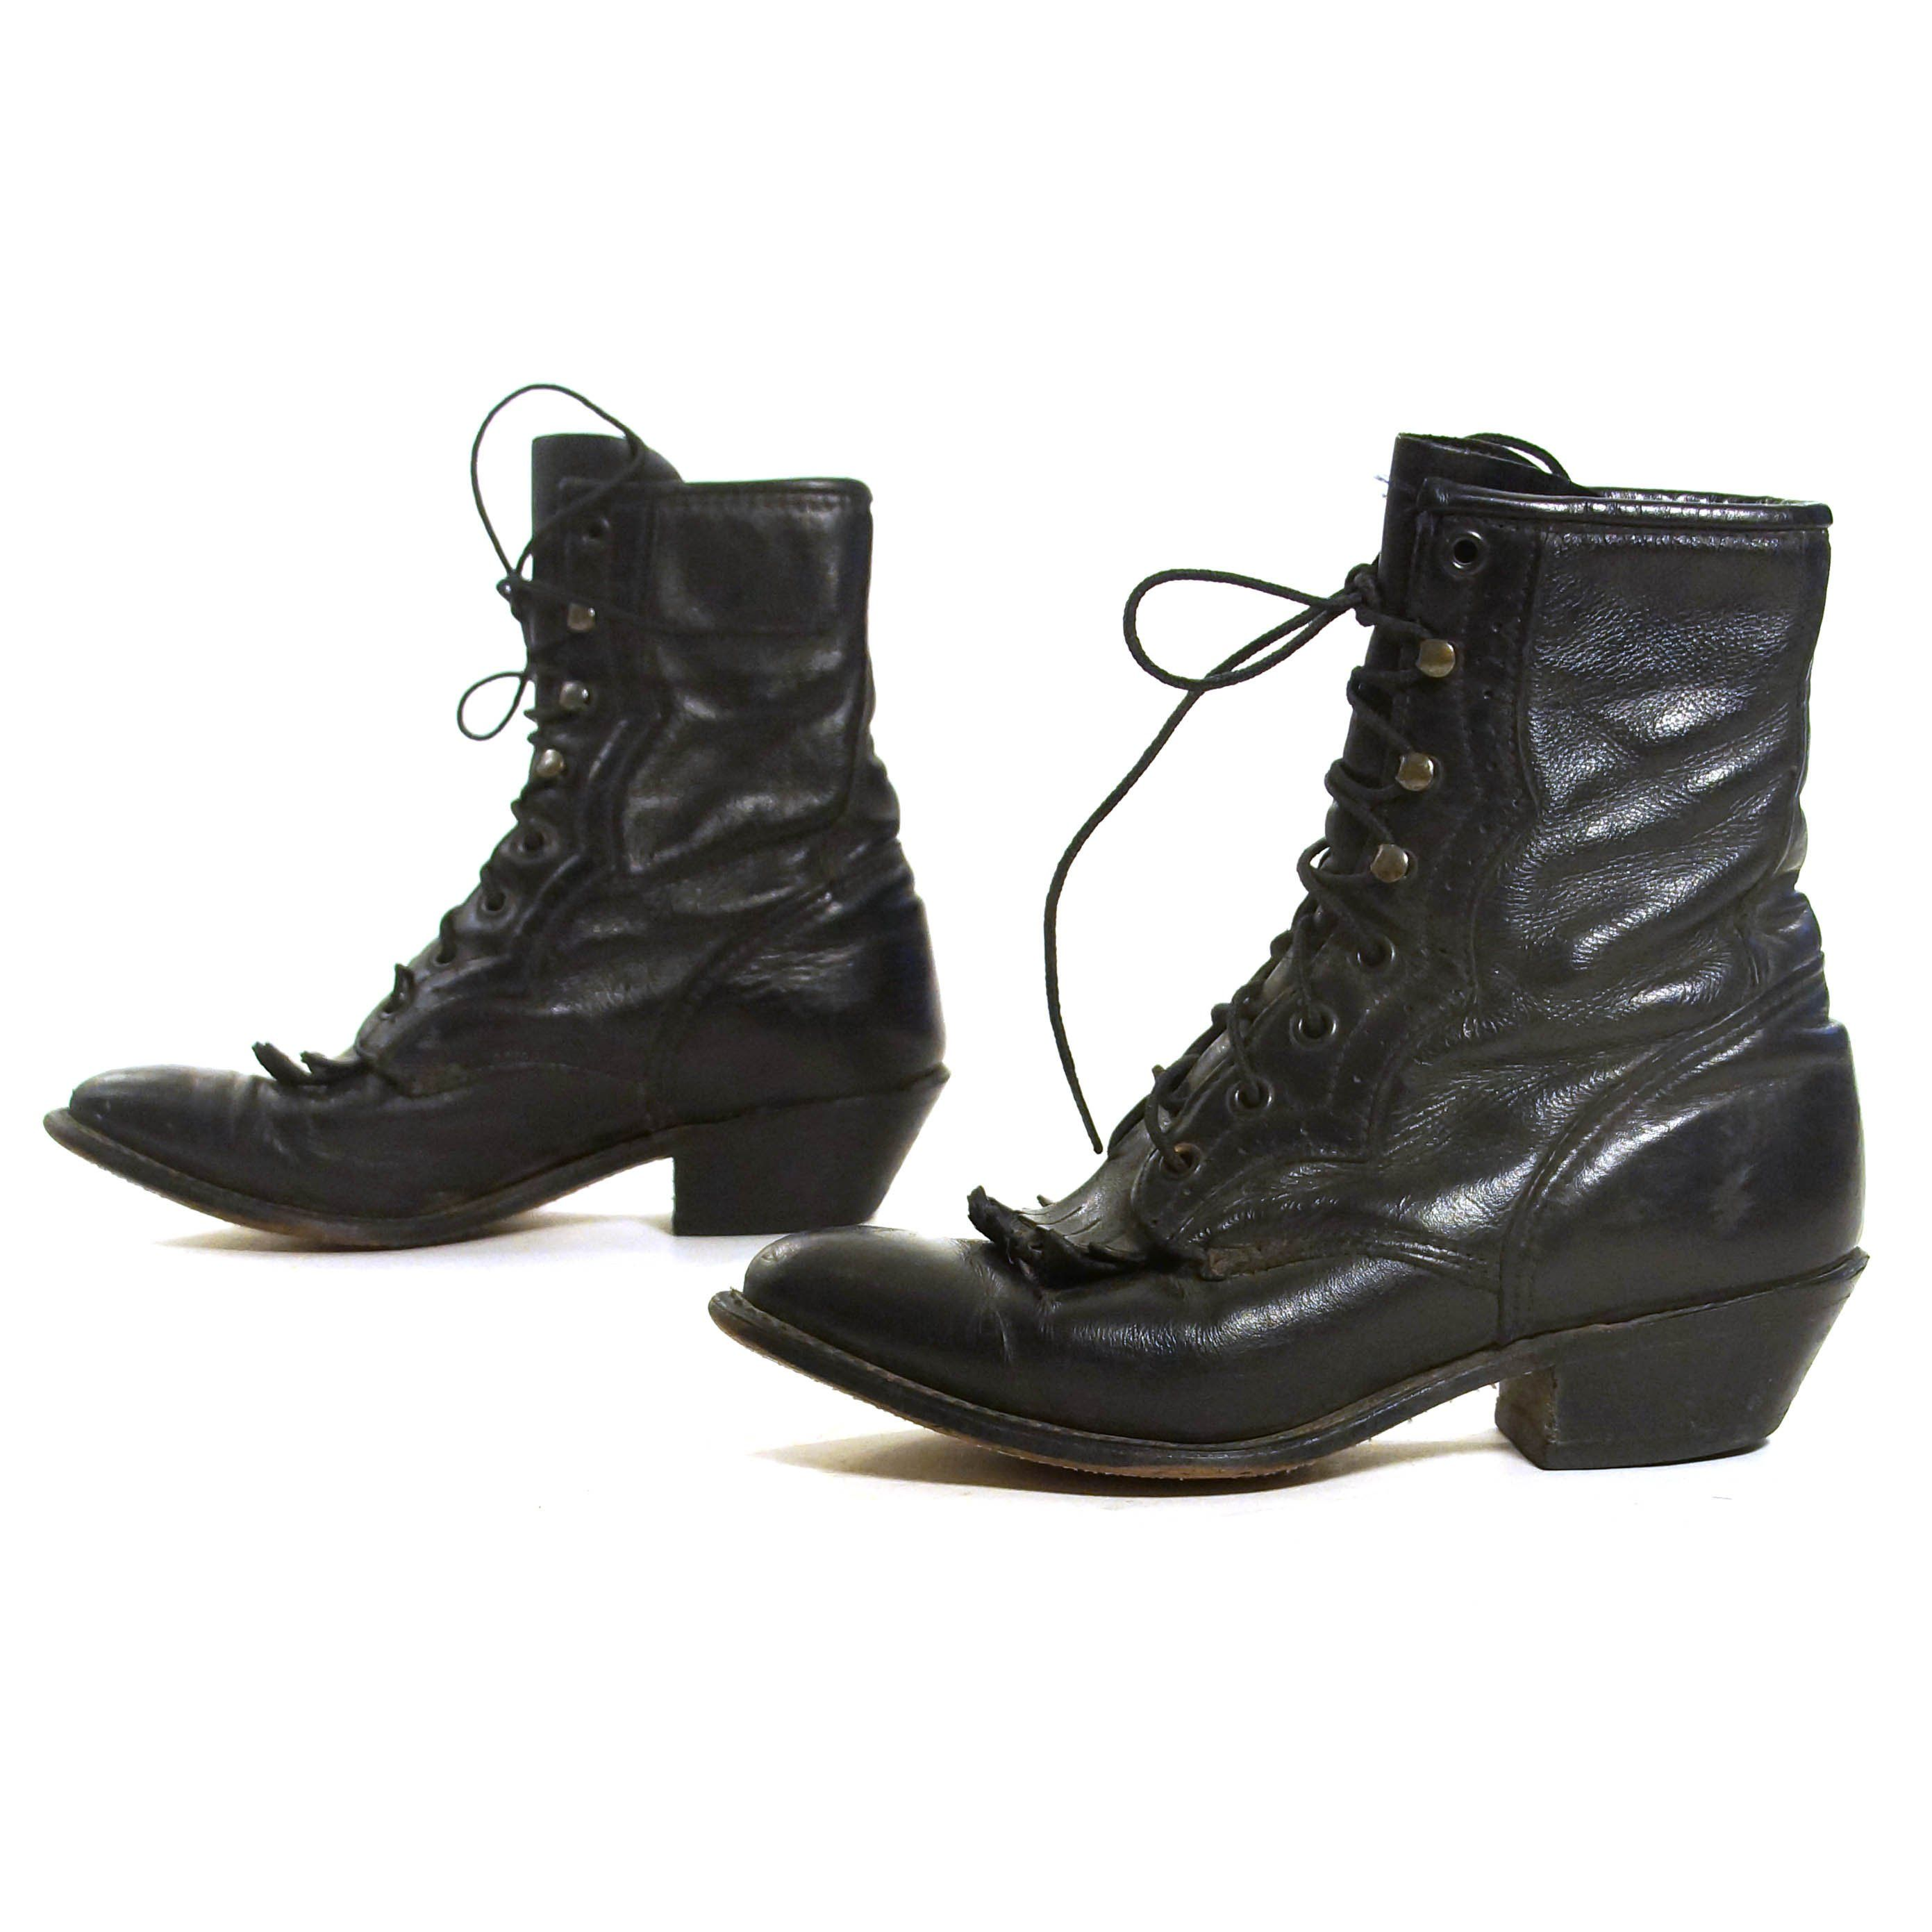 68831fdeadd0b Durango Lace Up Ropers Vintage 80s Black Leather Ankle Boots Packer ...